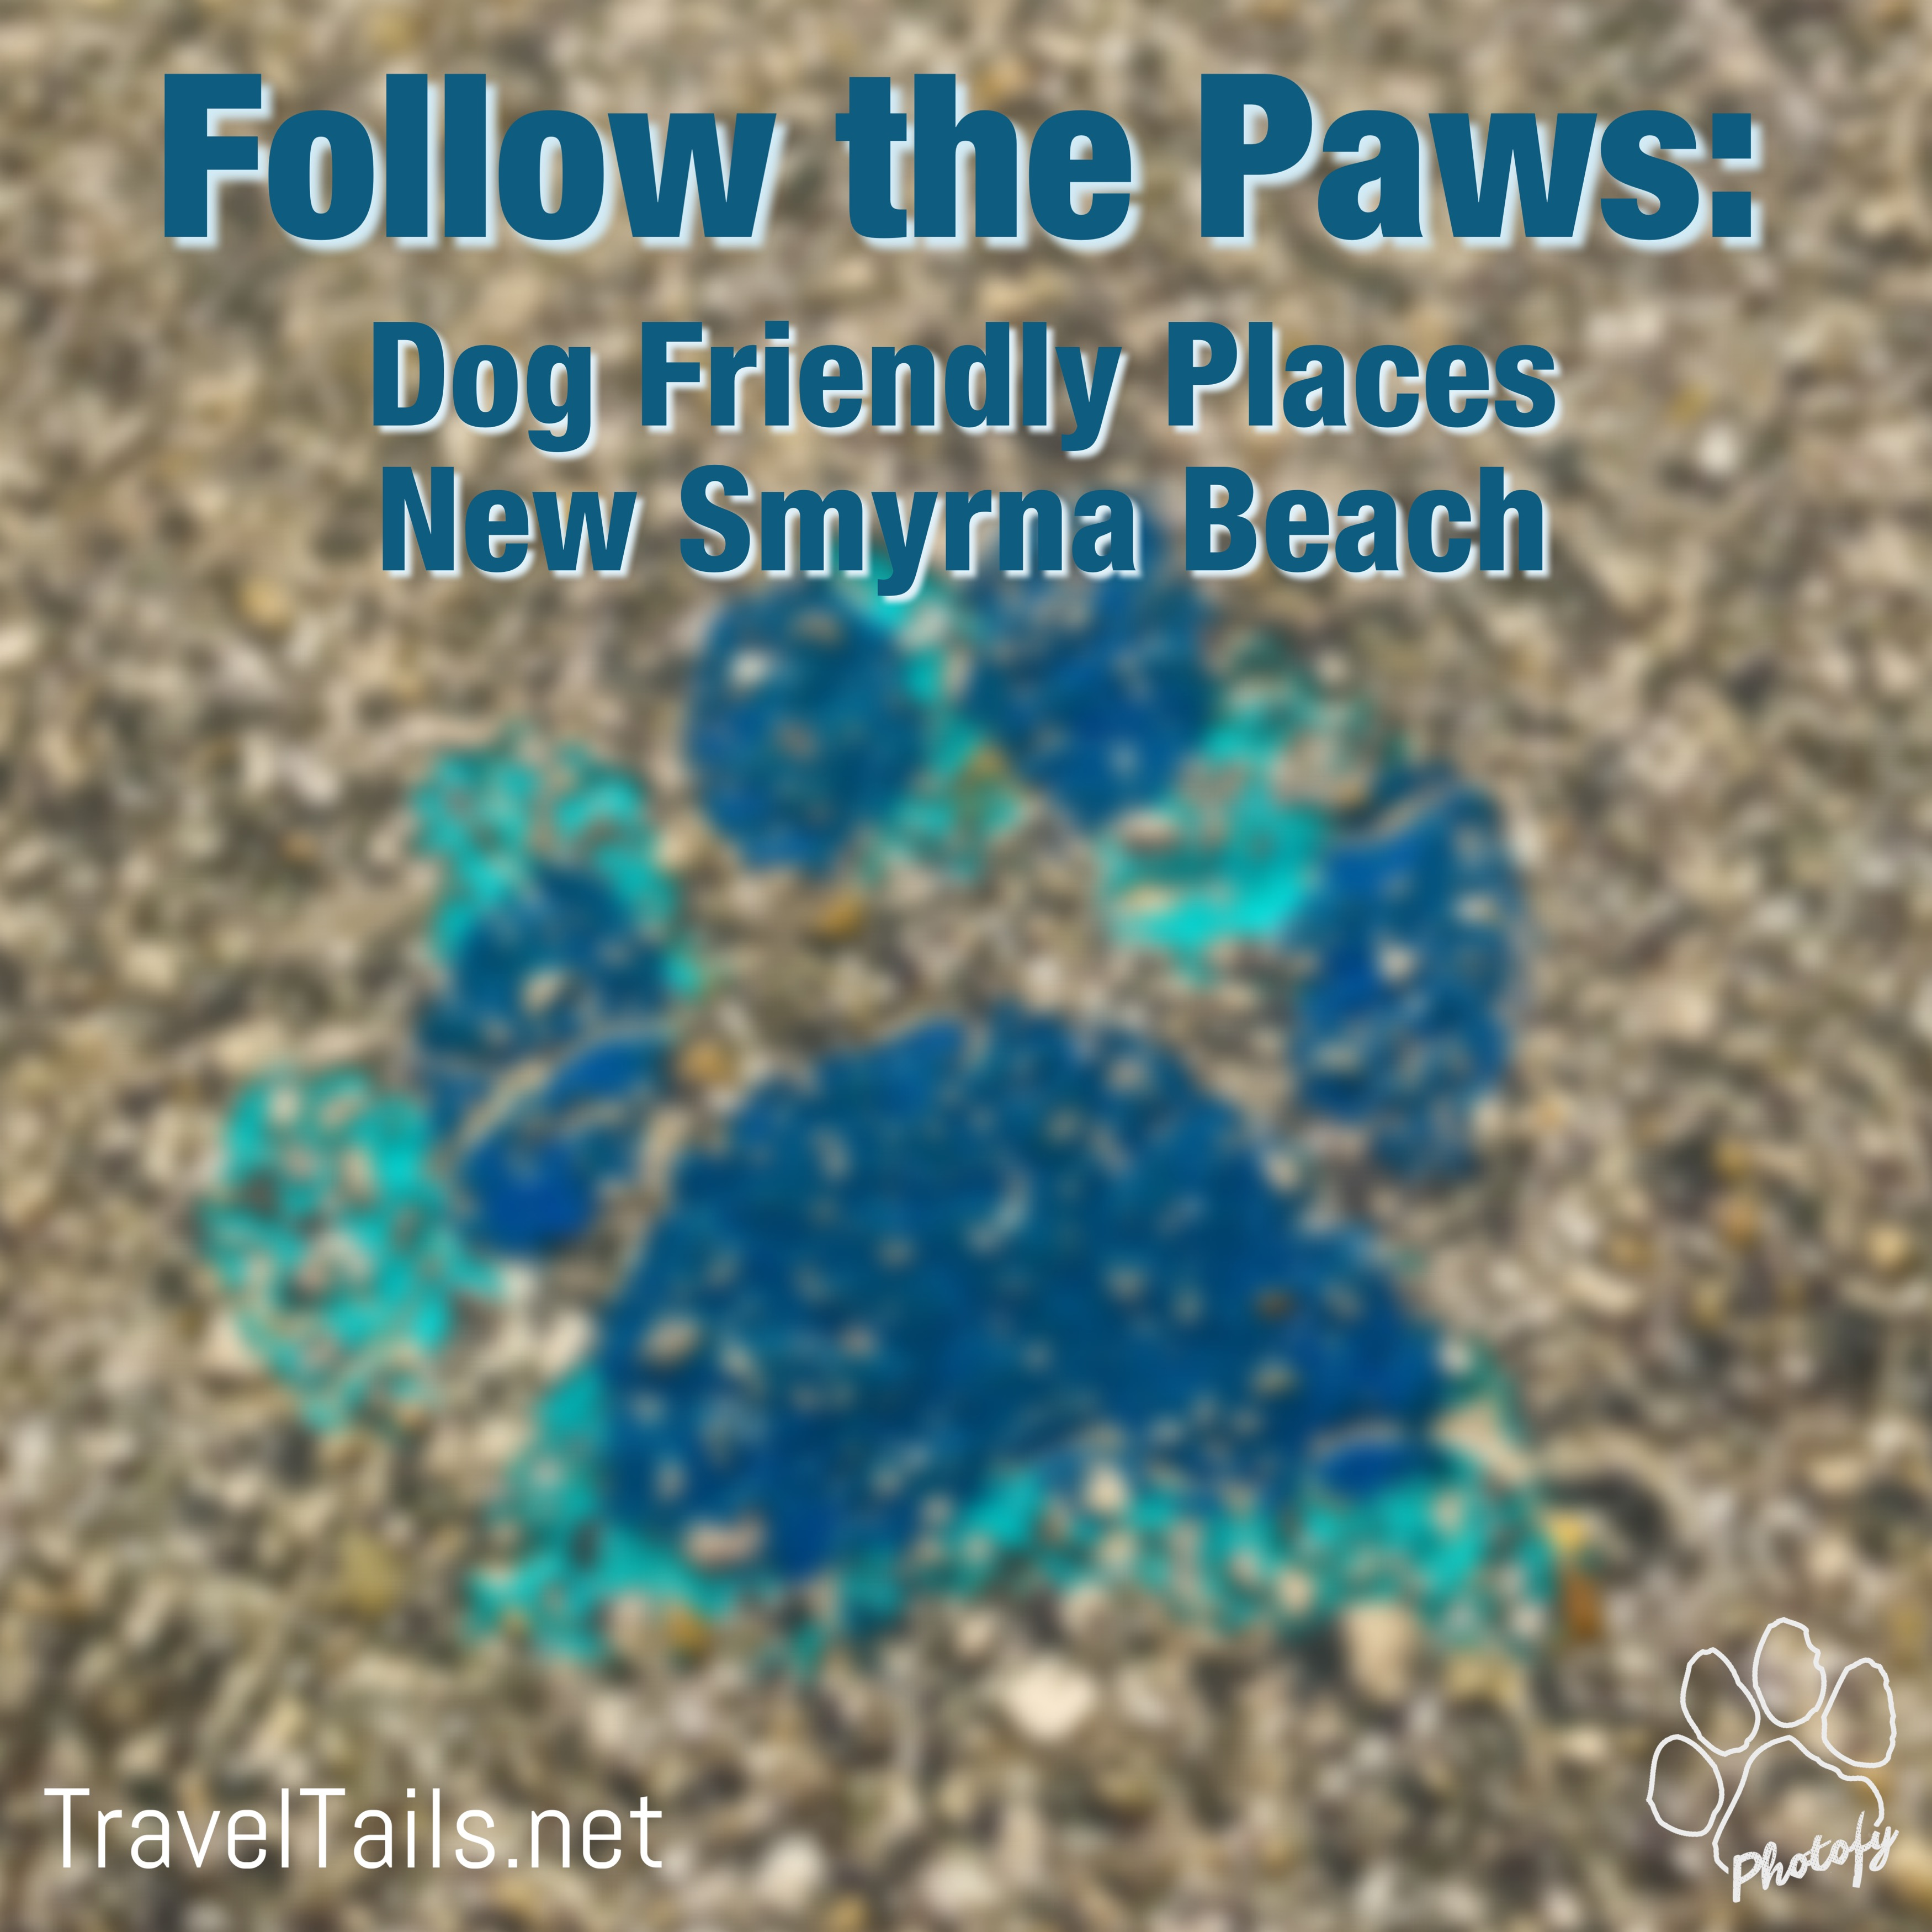 Follow the Paws: Dog Friendly Places in New Smyrna Beach